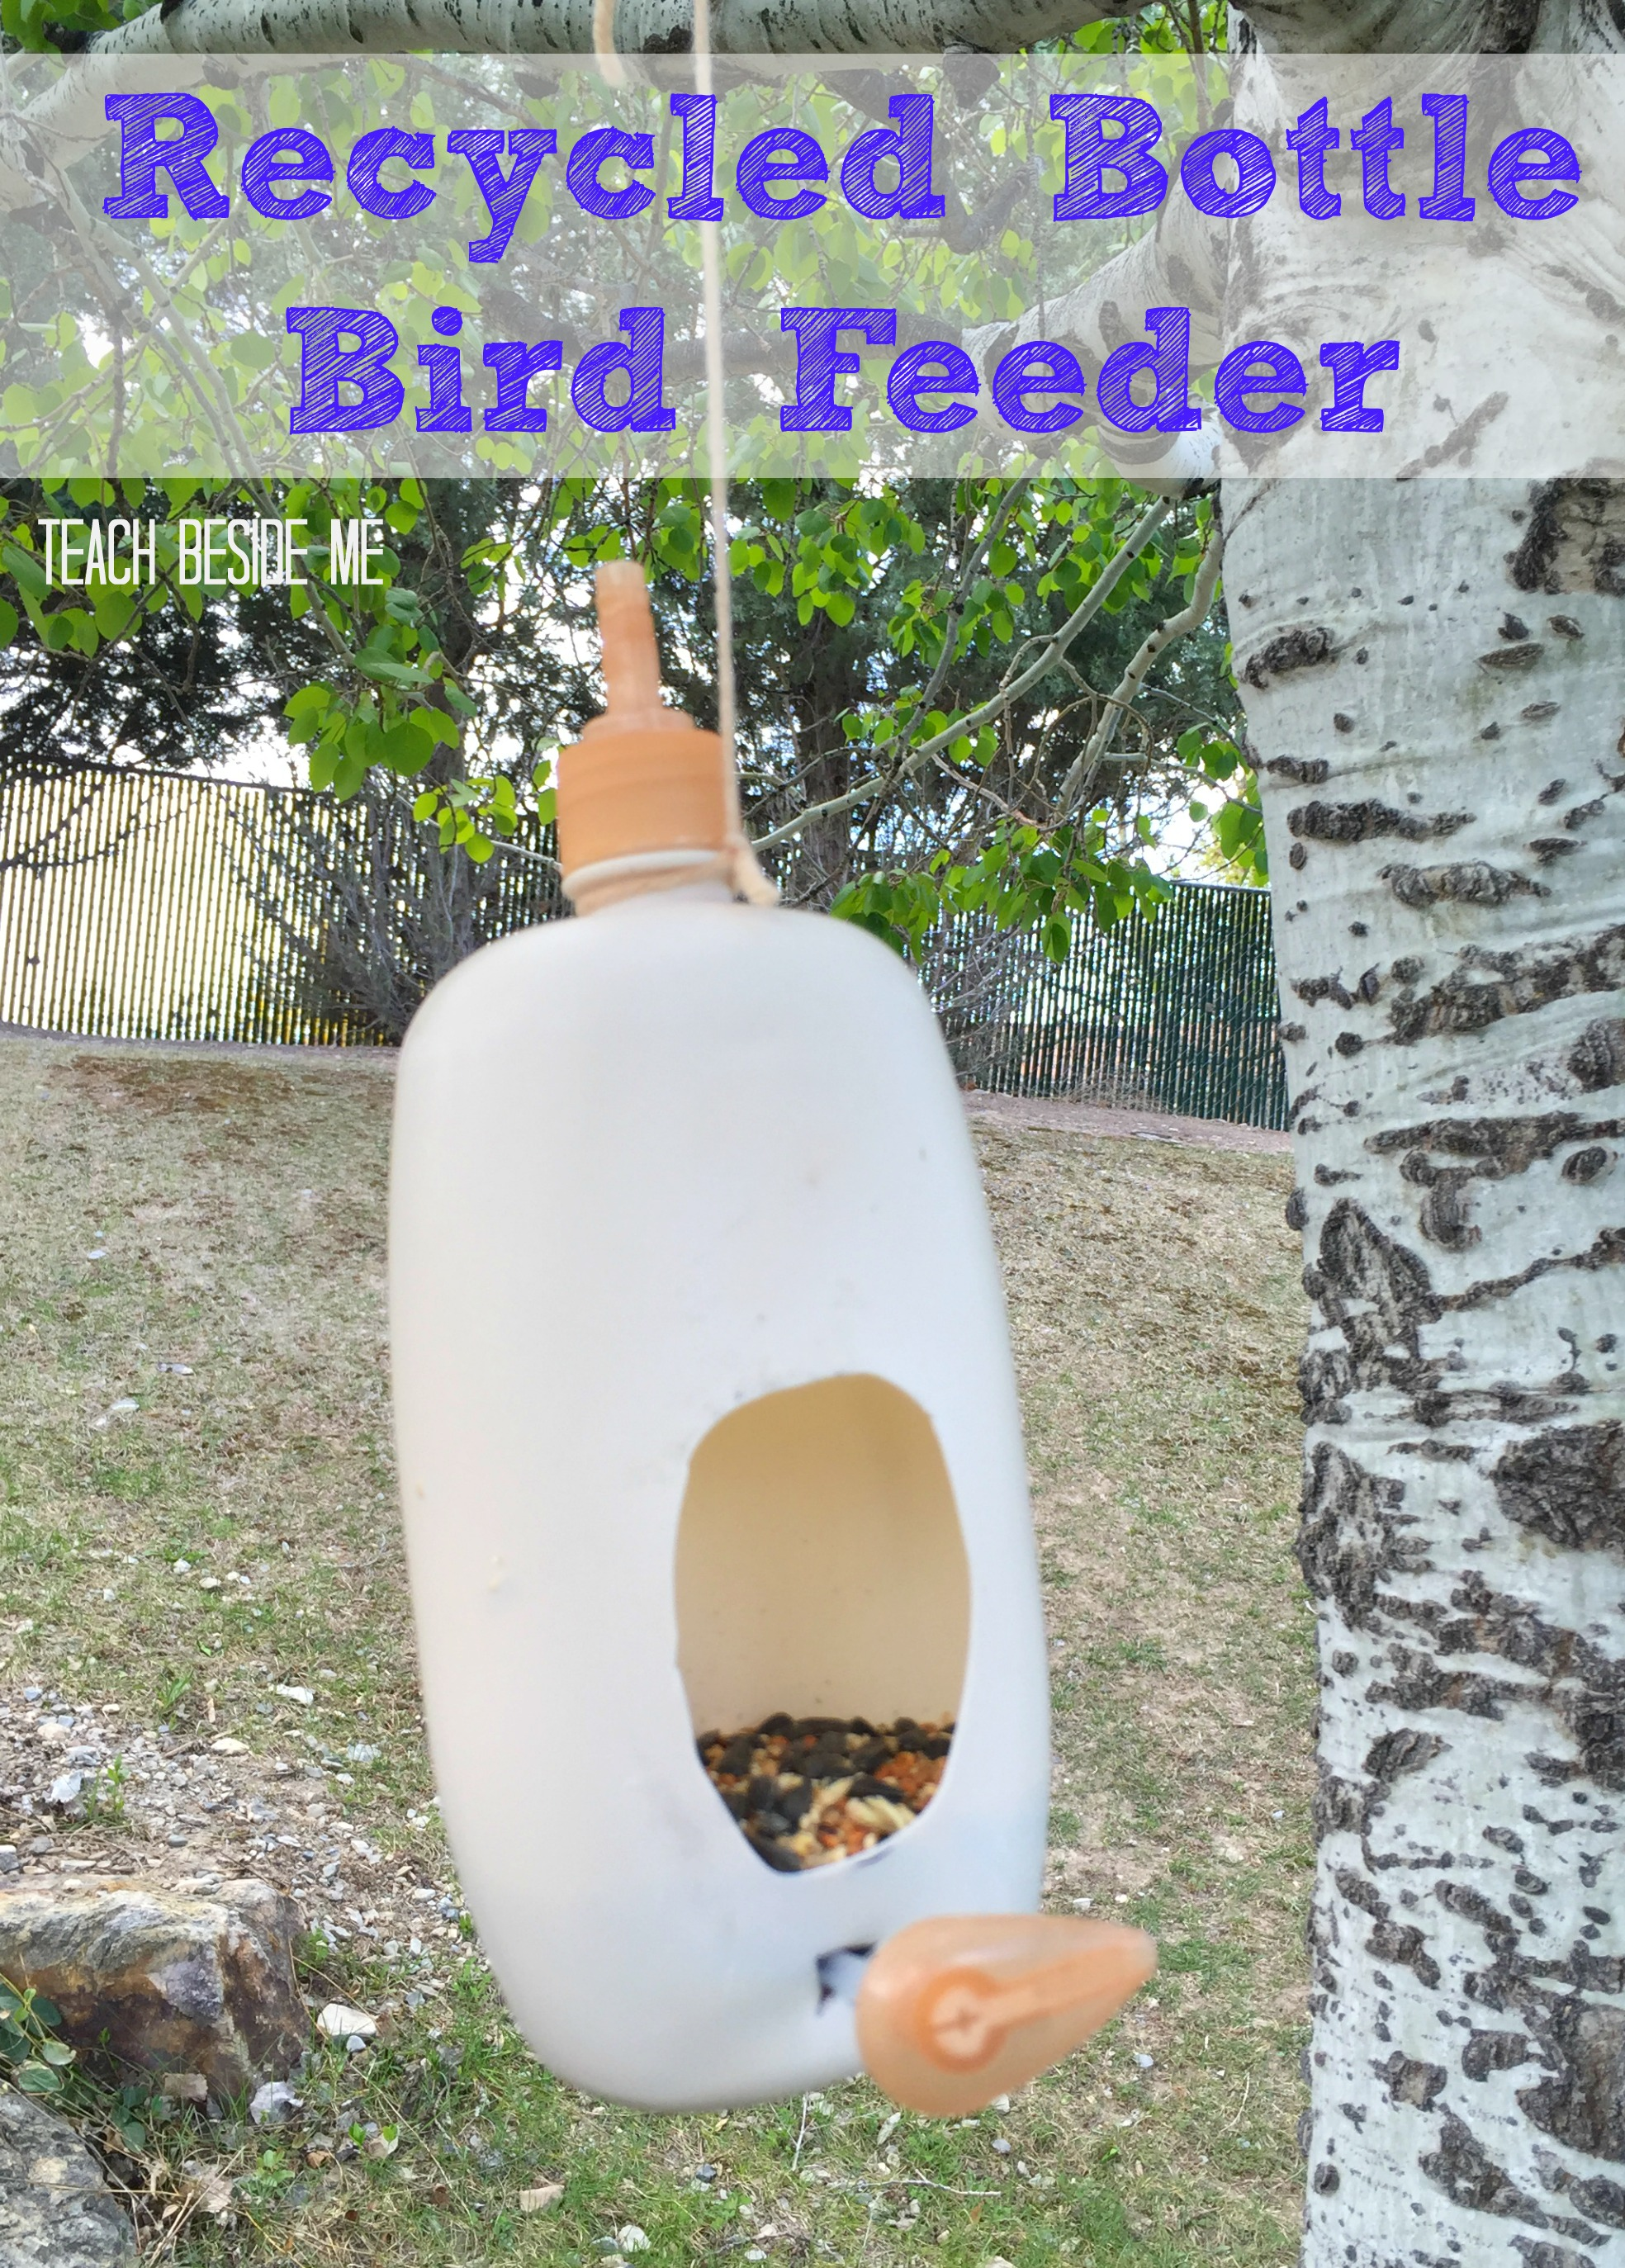 Recycled Bottle Bird Feeder & Two Ingredient Play Dough